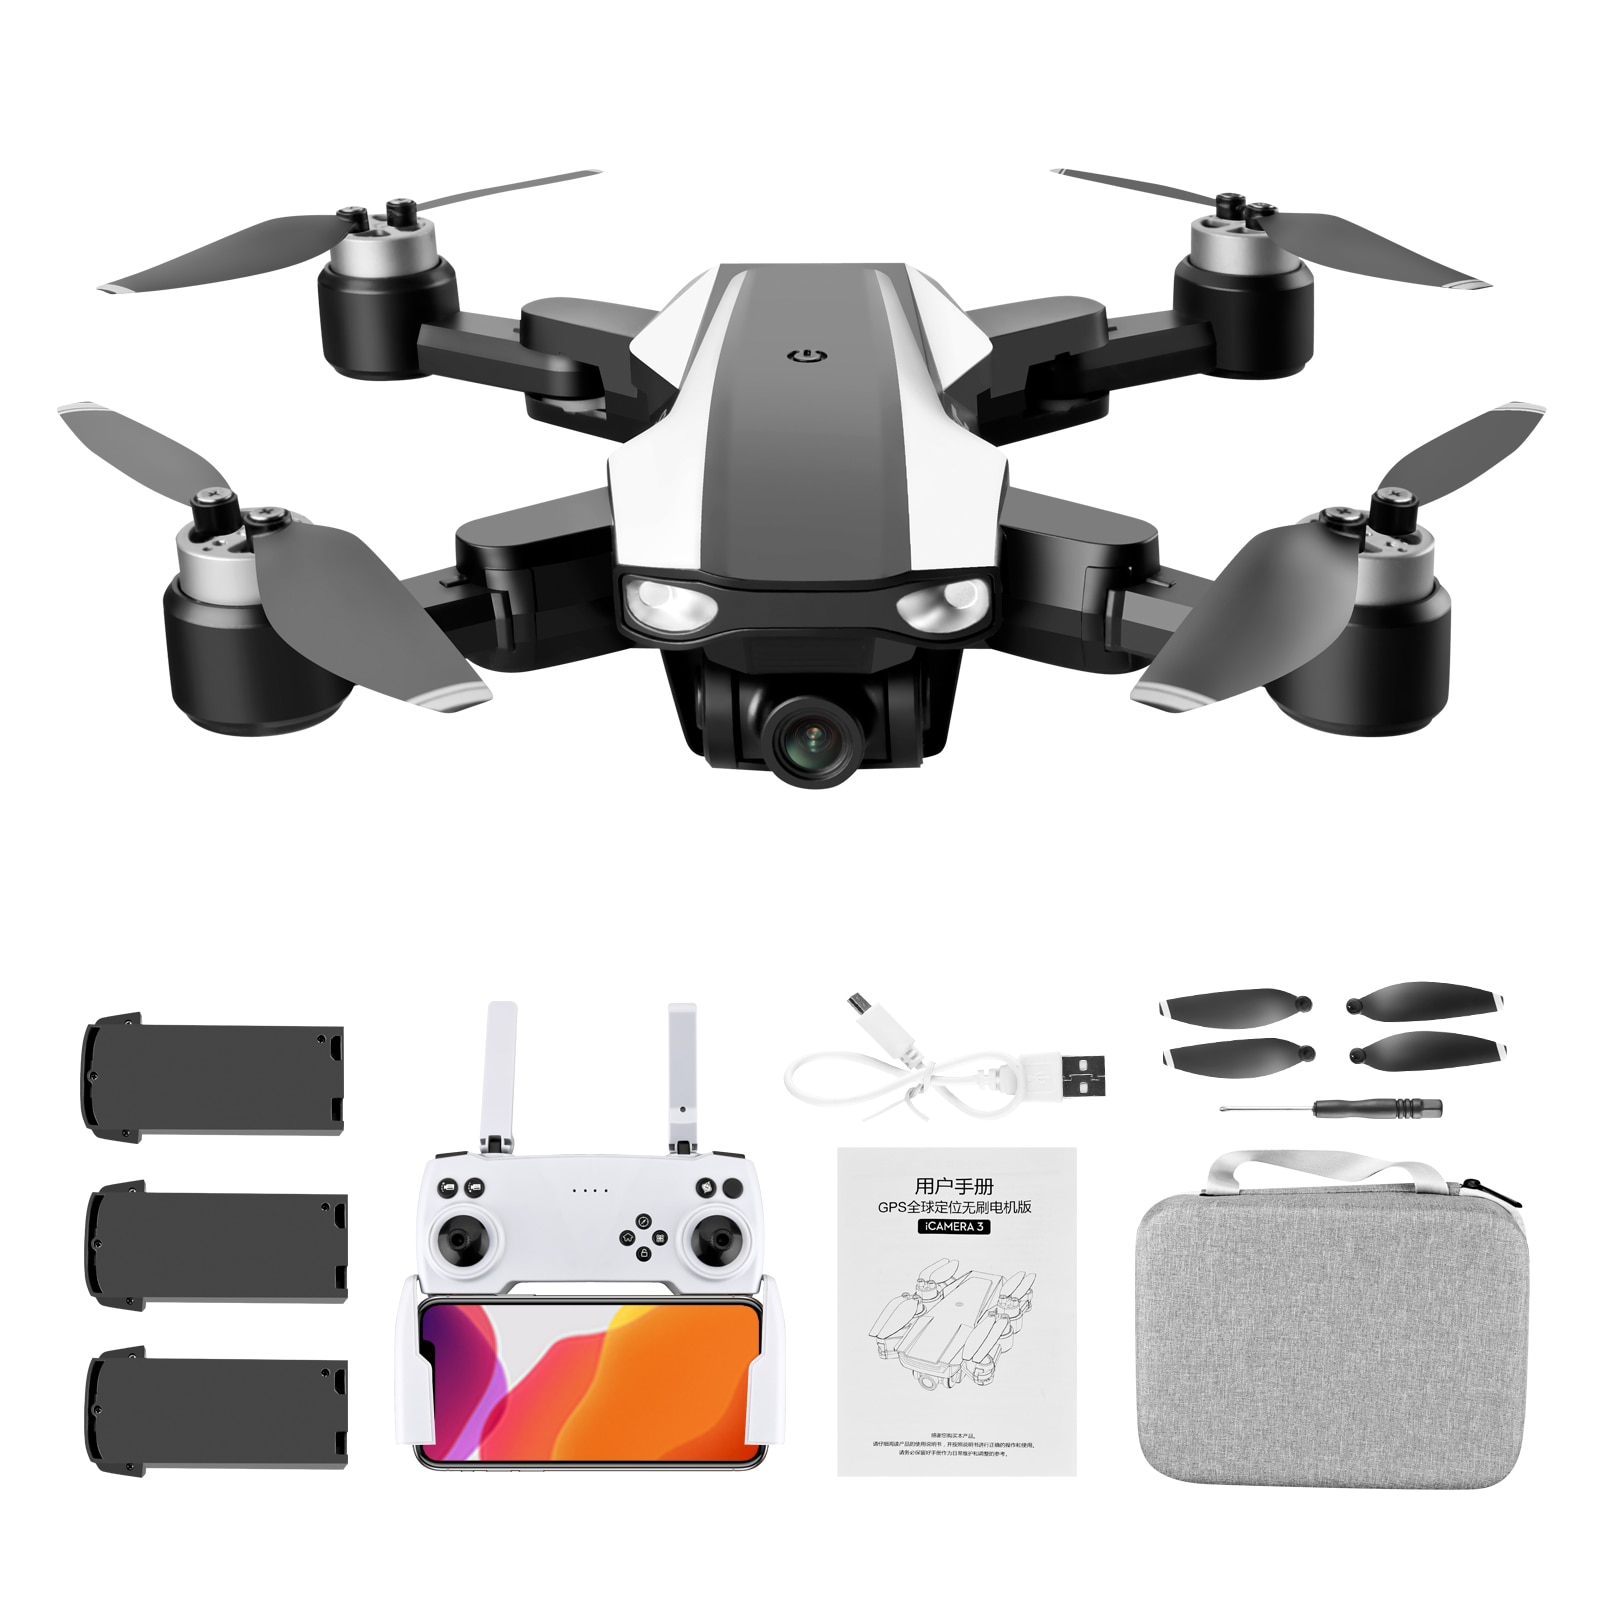 ZK30 Drone 6KHD S105 Double Camer GPS Professional 5G Wifi Brushless Motor Drone Flight 30 Min Rc Drone Stabilier Distance 1.2km enlarge